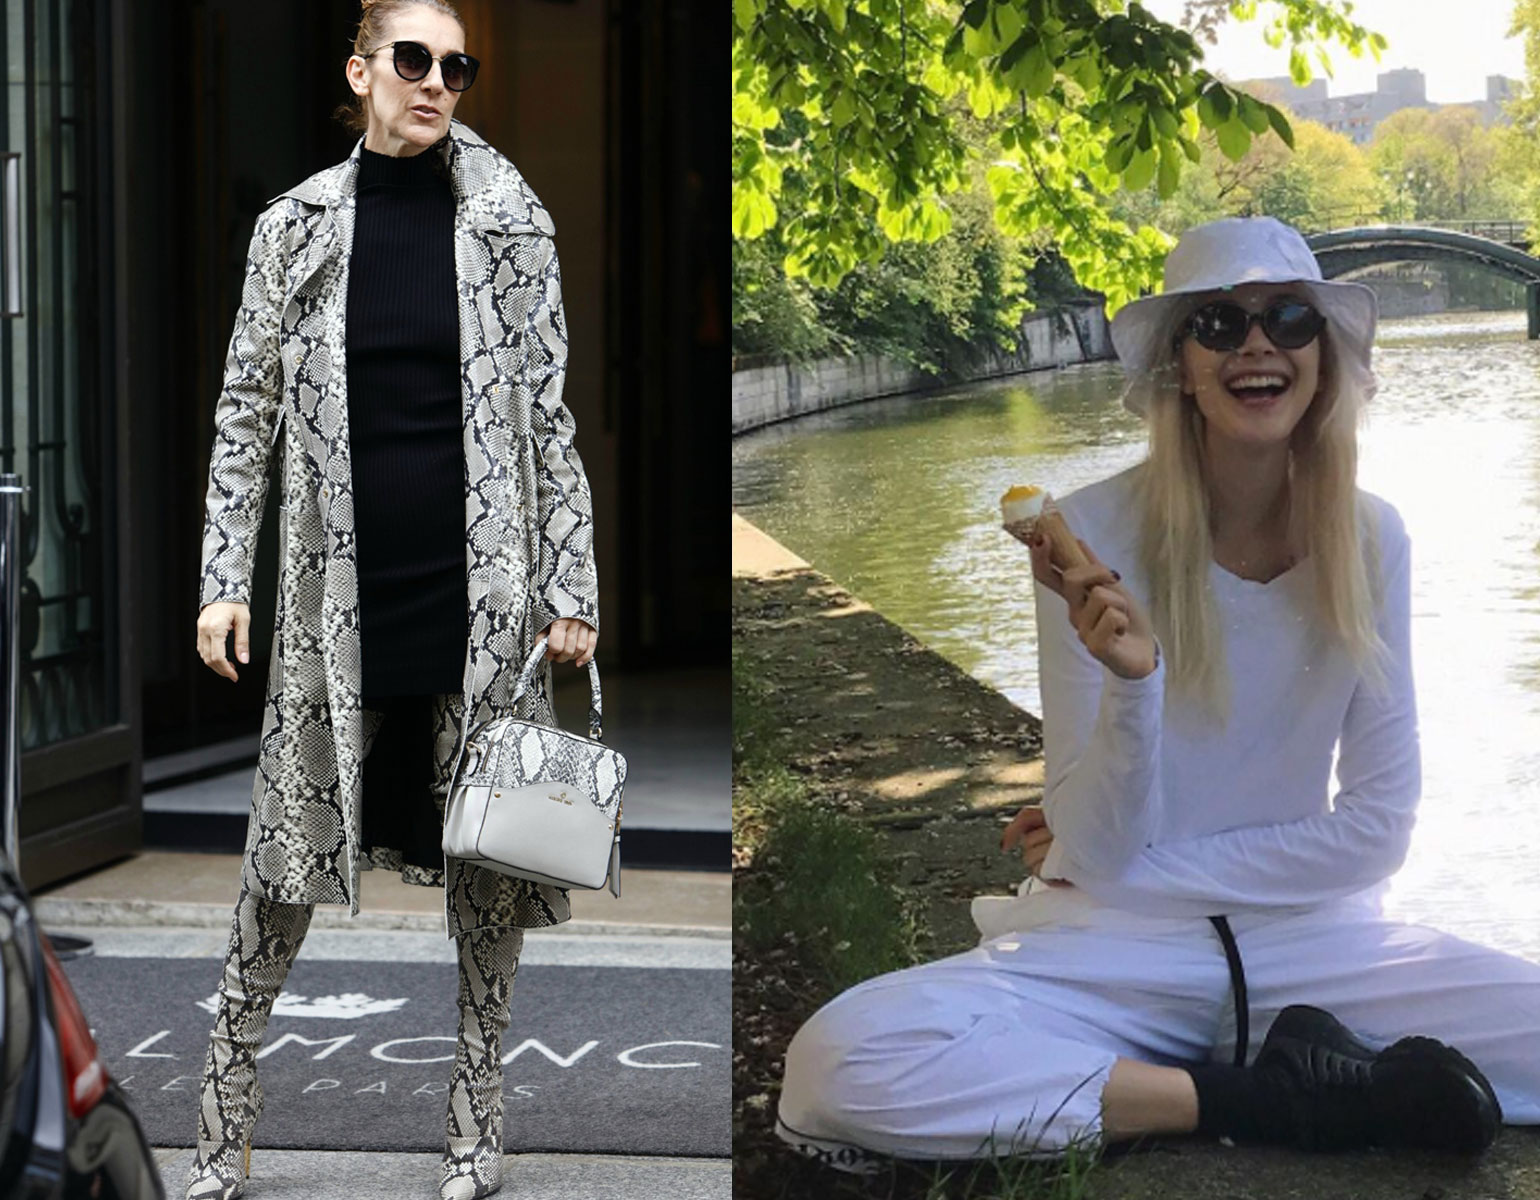 trends, trend, mode, modetrend, fashion